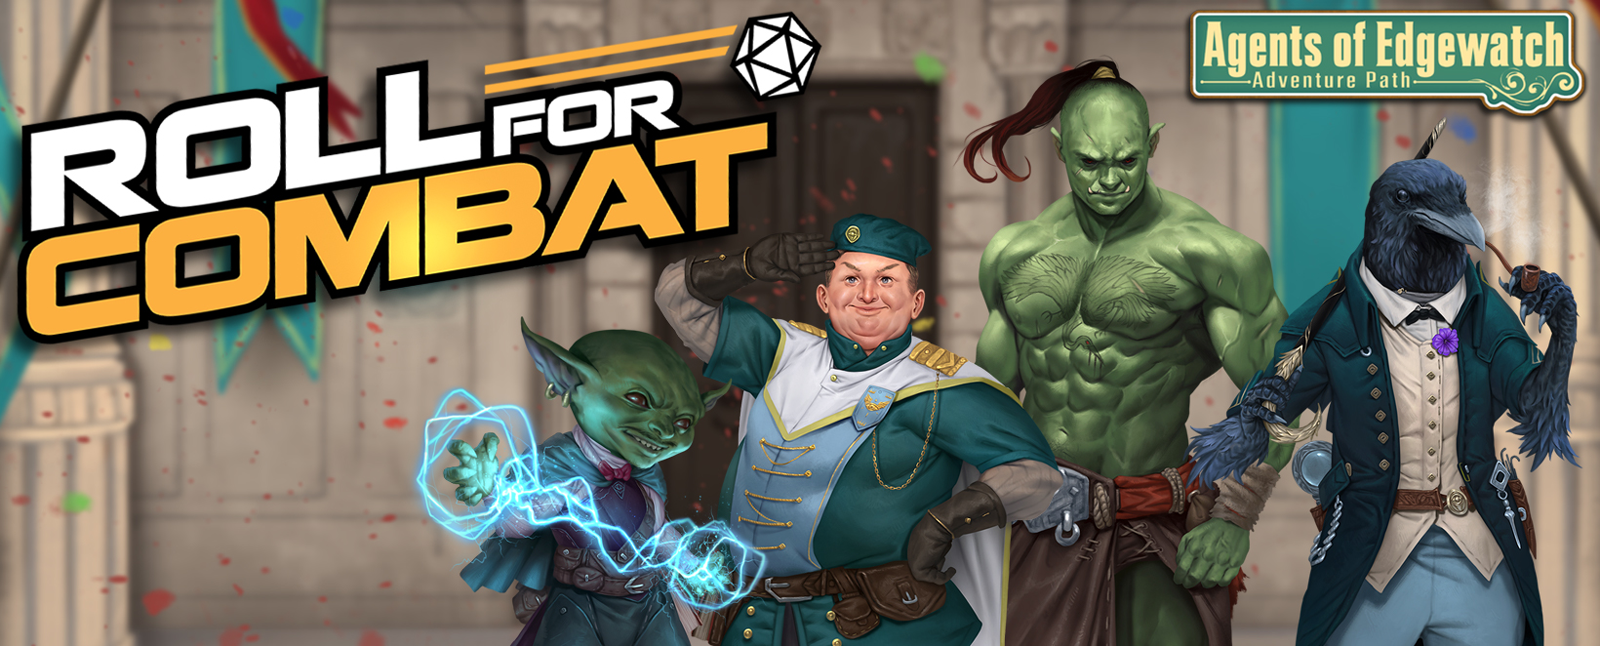 Roll For Combat the Agents of Edgewatch Adventure Path